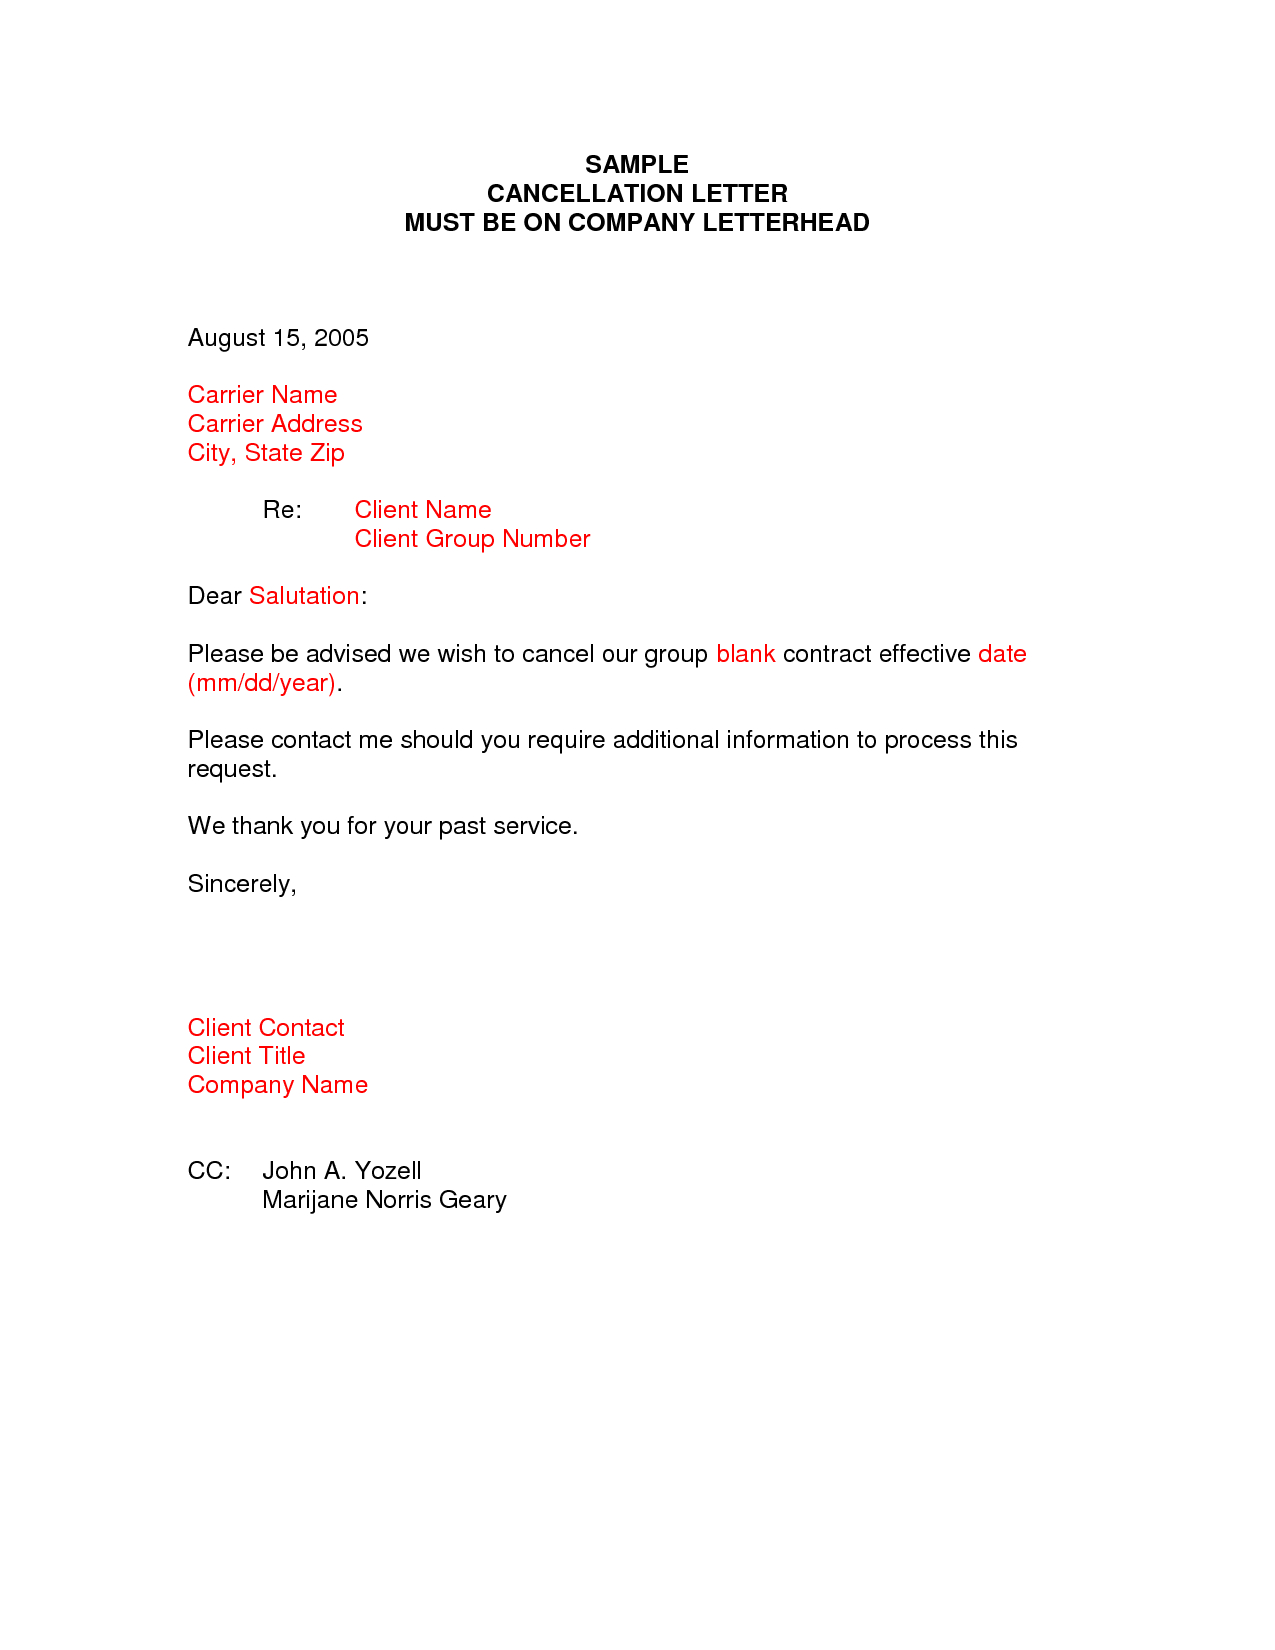 Business termination letter template samples letter templates business termination letter template sample termination letter format business case examples free cover spiritdancerdesigns Image collections